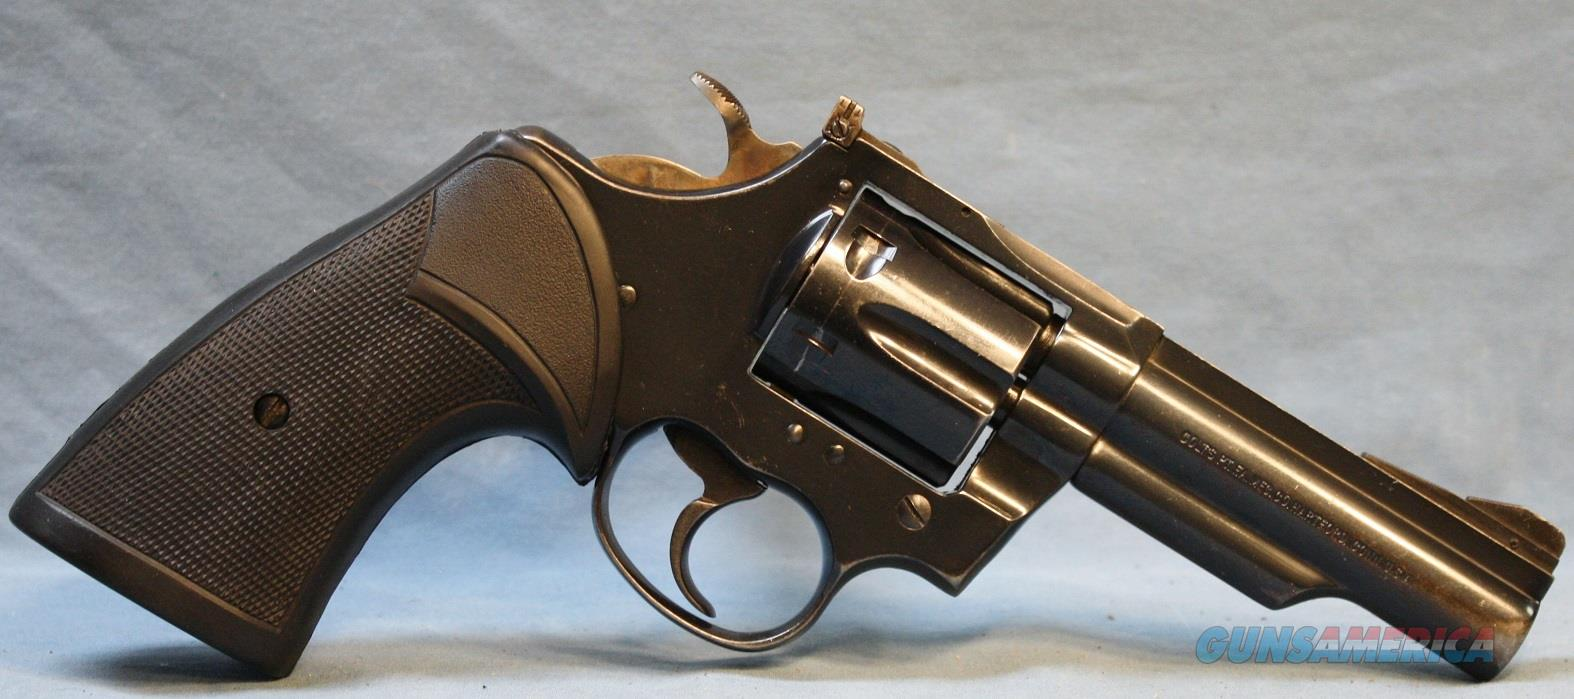 Colt Trooper MK III Double Action Revolver, made in 1974, 357 MAG Free Shipping!!  Guns > Pistols > Colt Double Action Revolvers- Modern